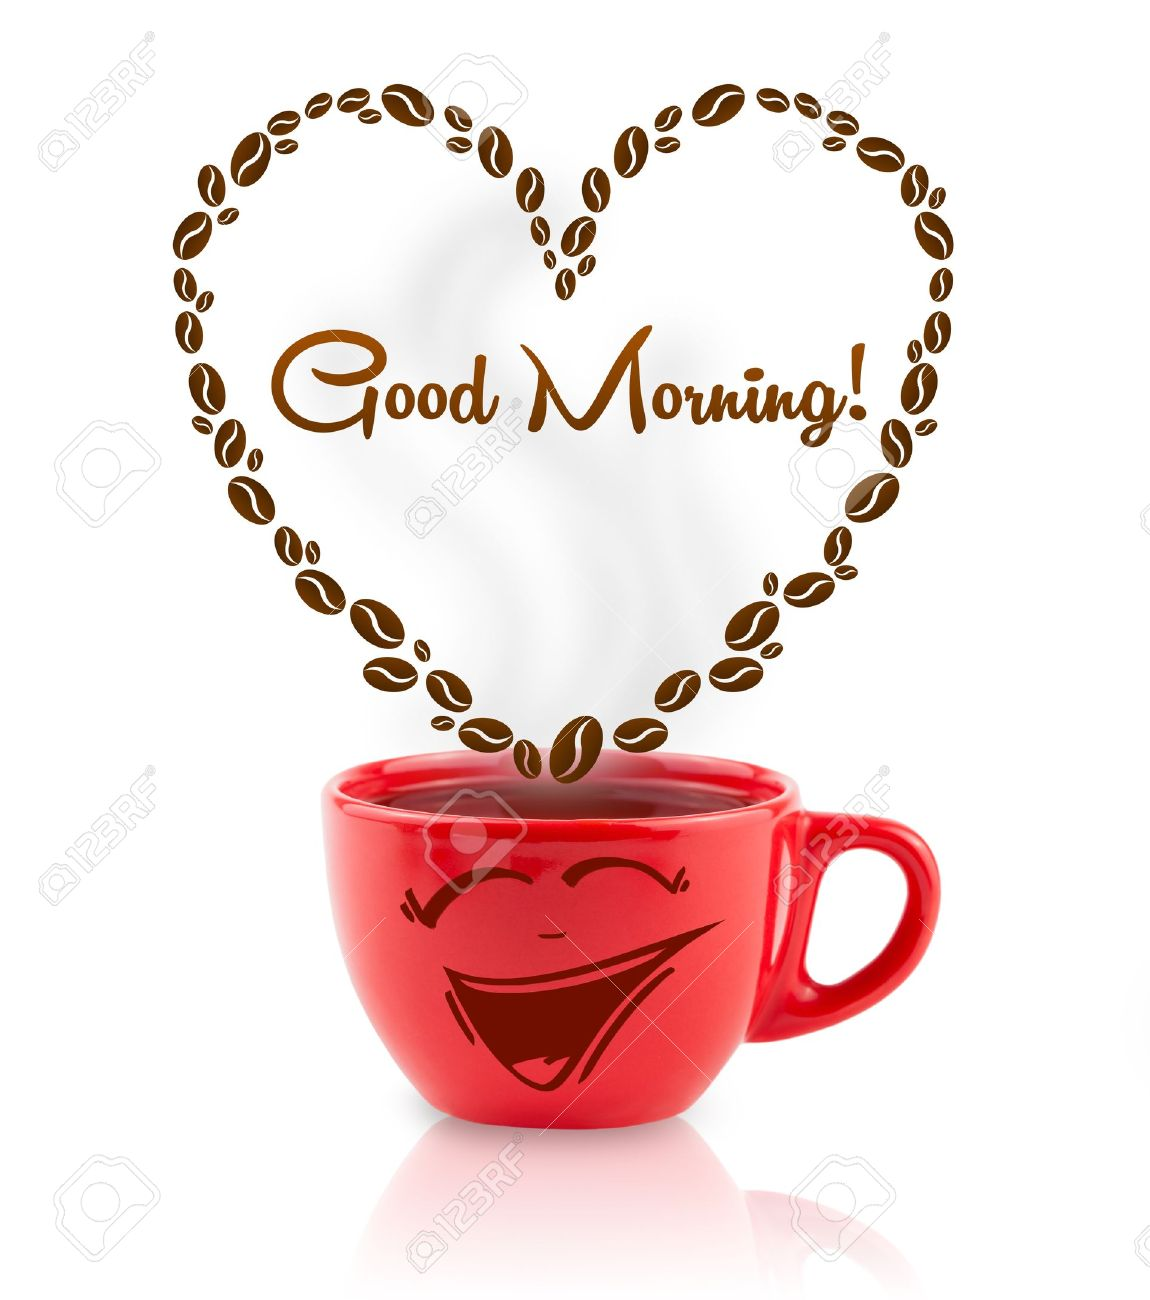 Good morning images with love symbol